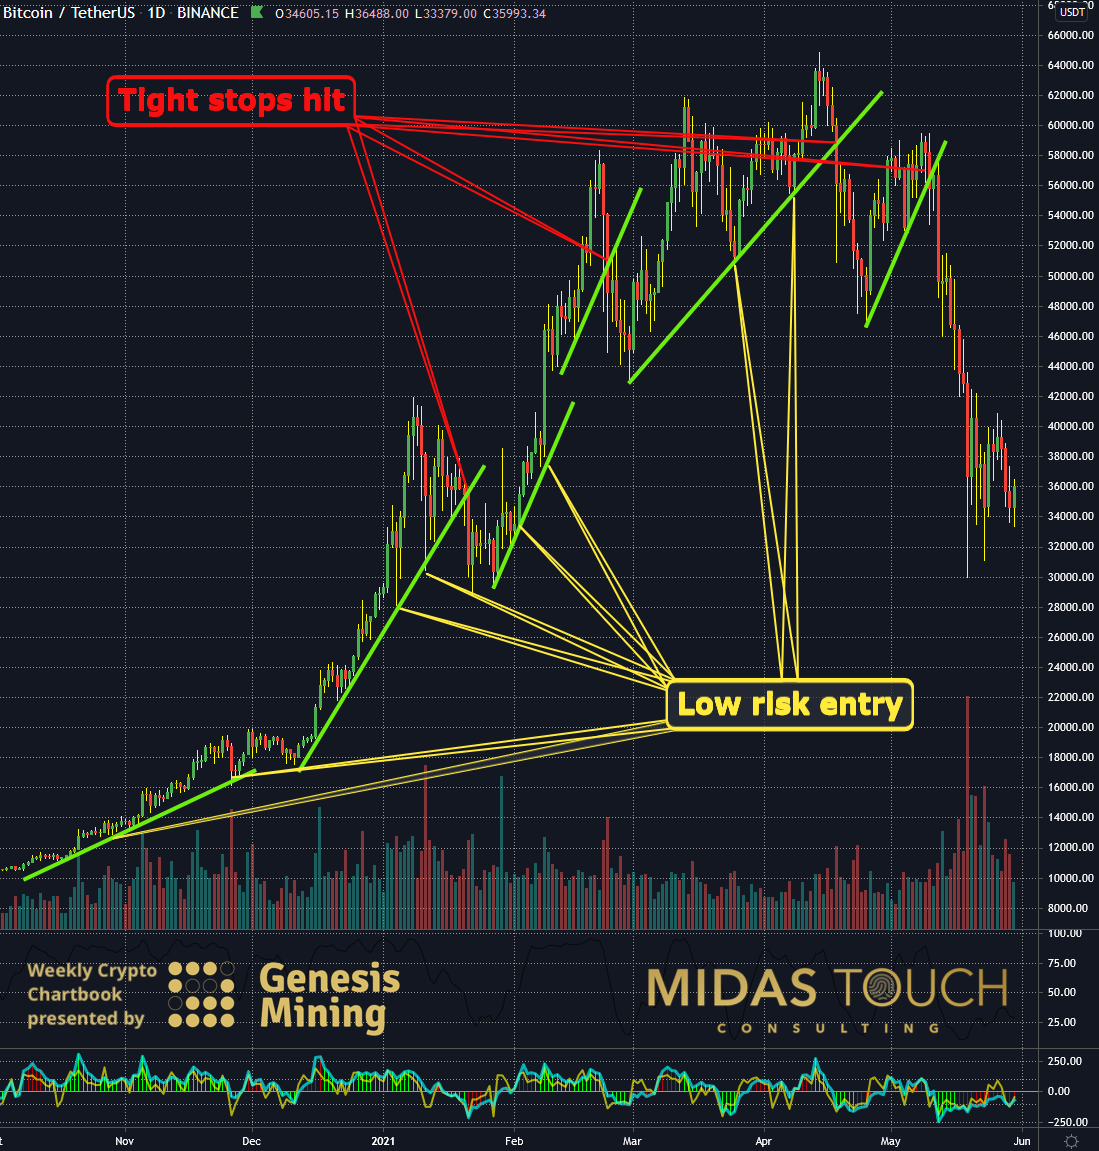 Bitcoin in US-Dollar, daily chart as of May 31st, 2021.